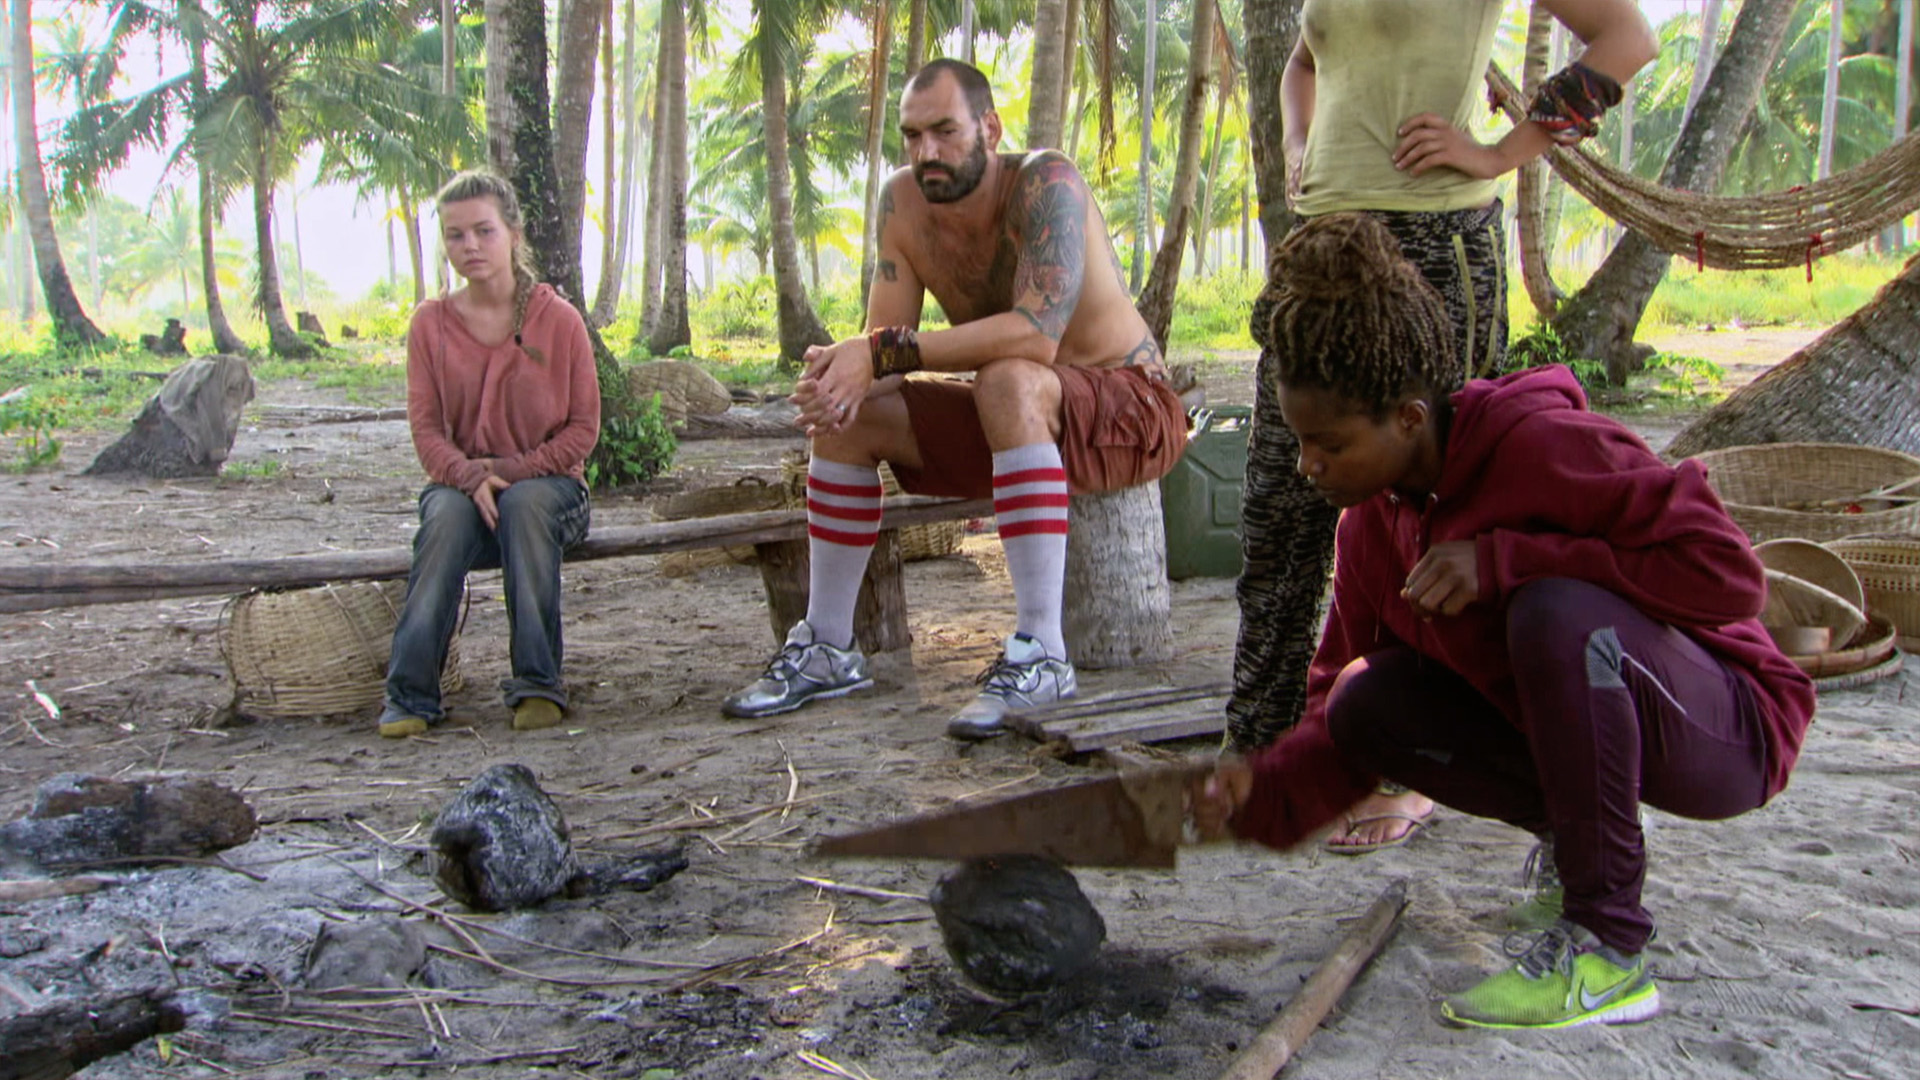 Julia and Scot watch Cydney as she cracks open a coconut.